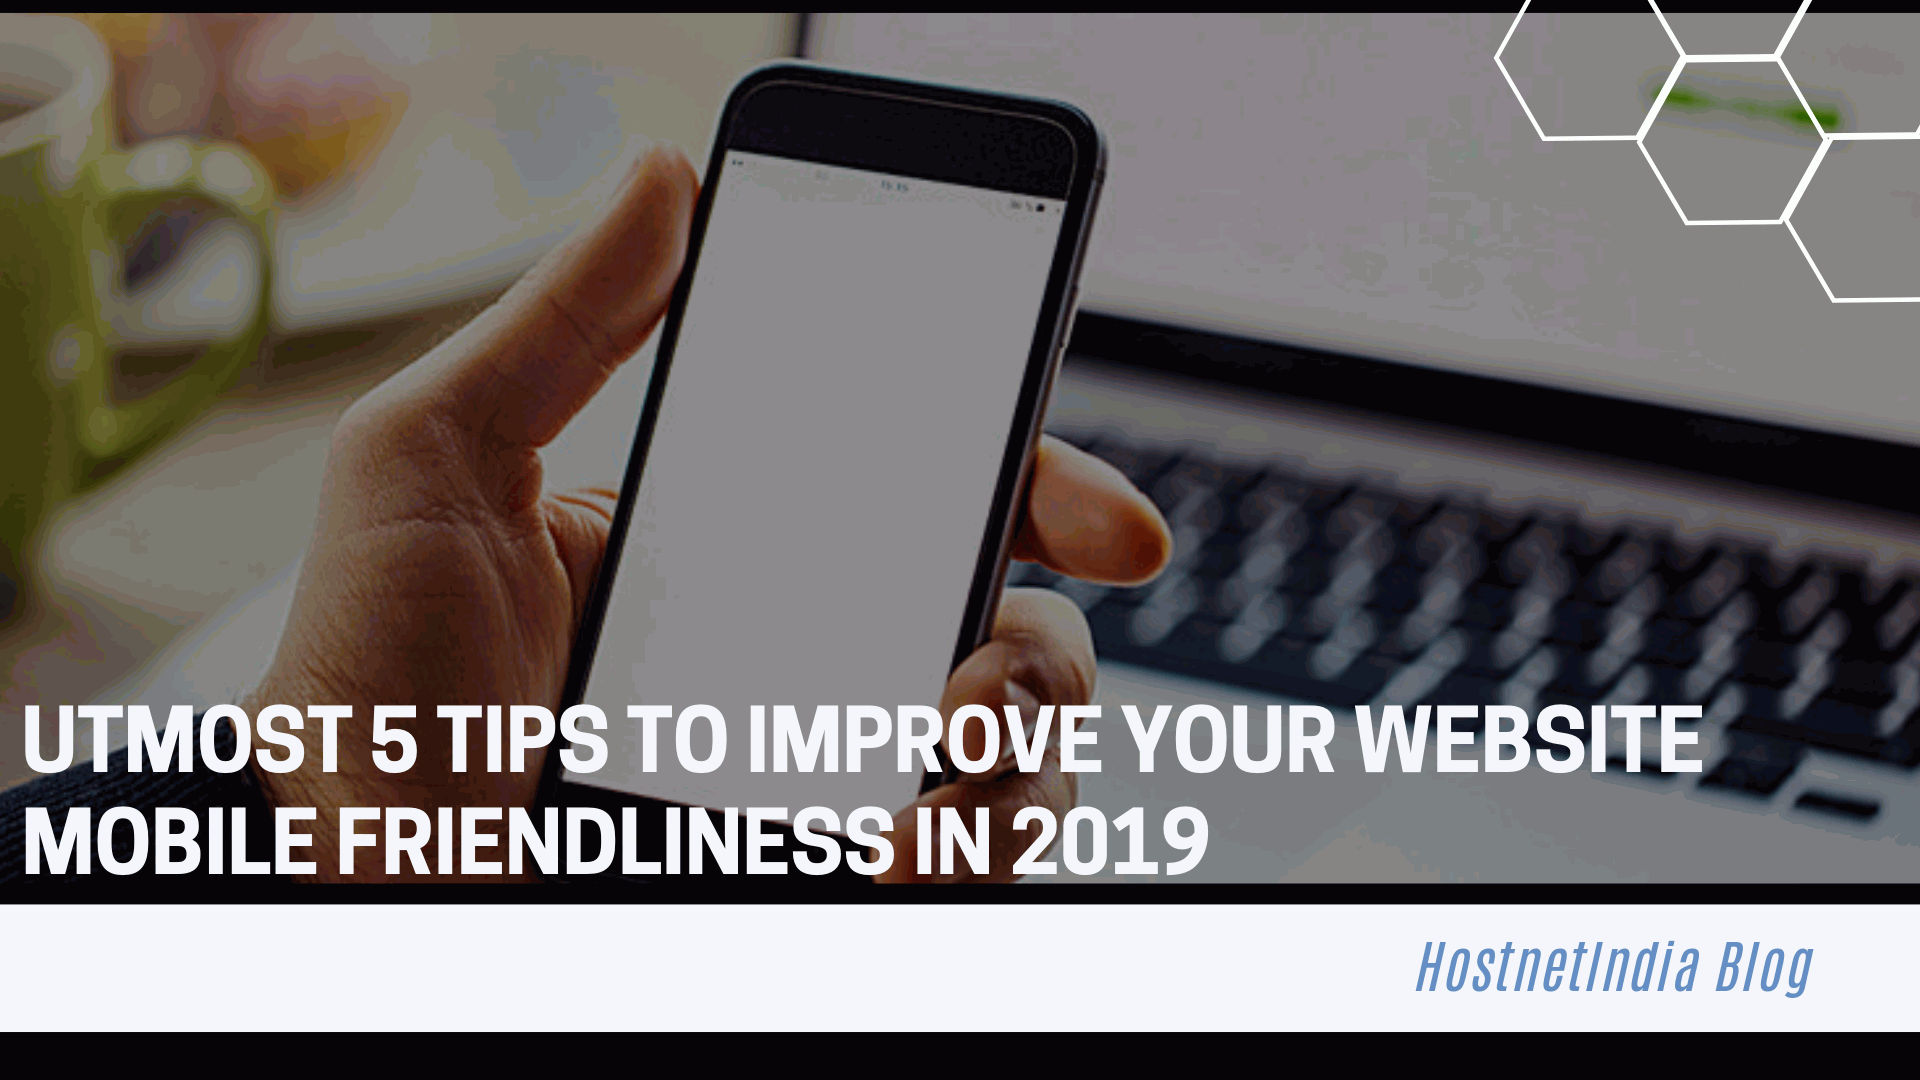 Utmost 5 Tips to Improve Your Website Mobile Friendliness in 2019